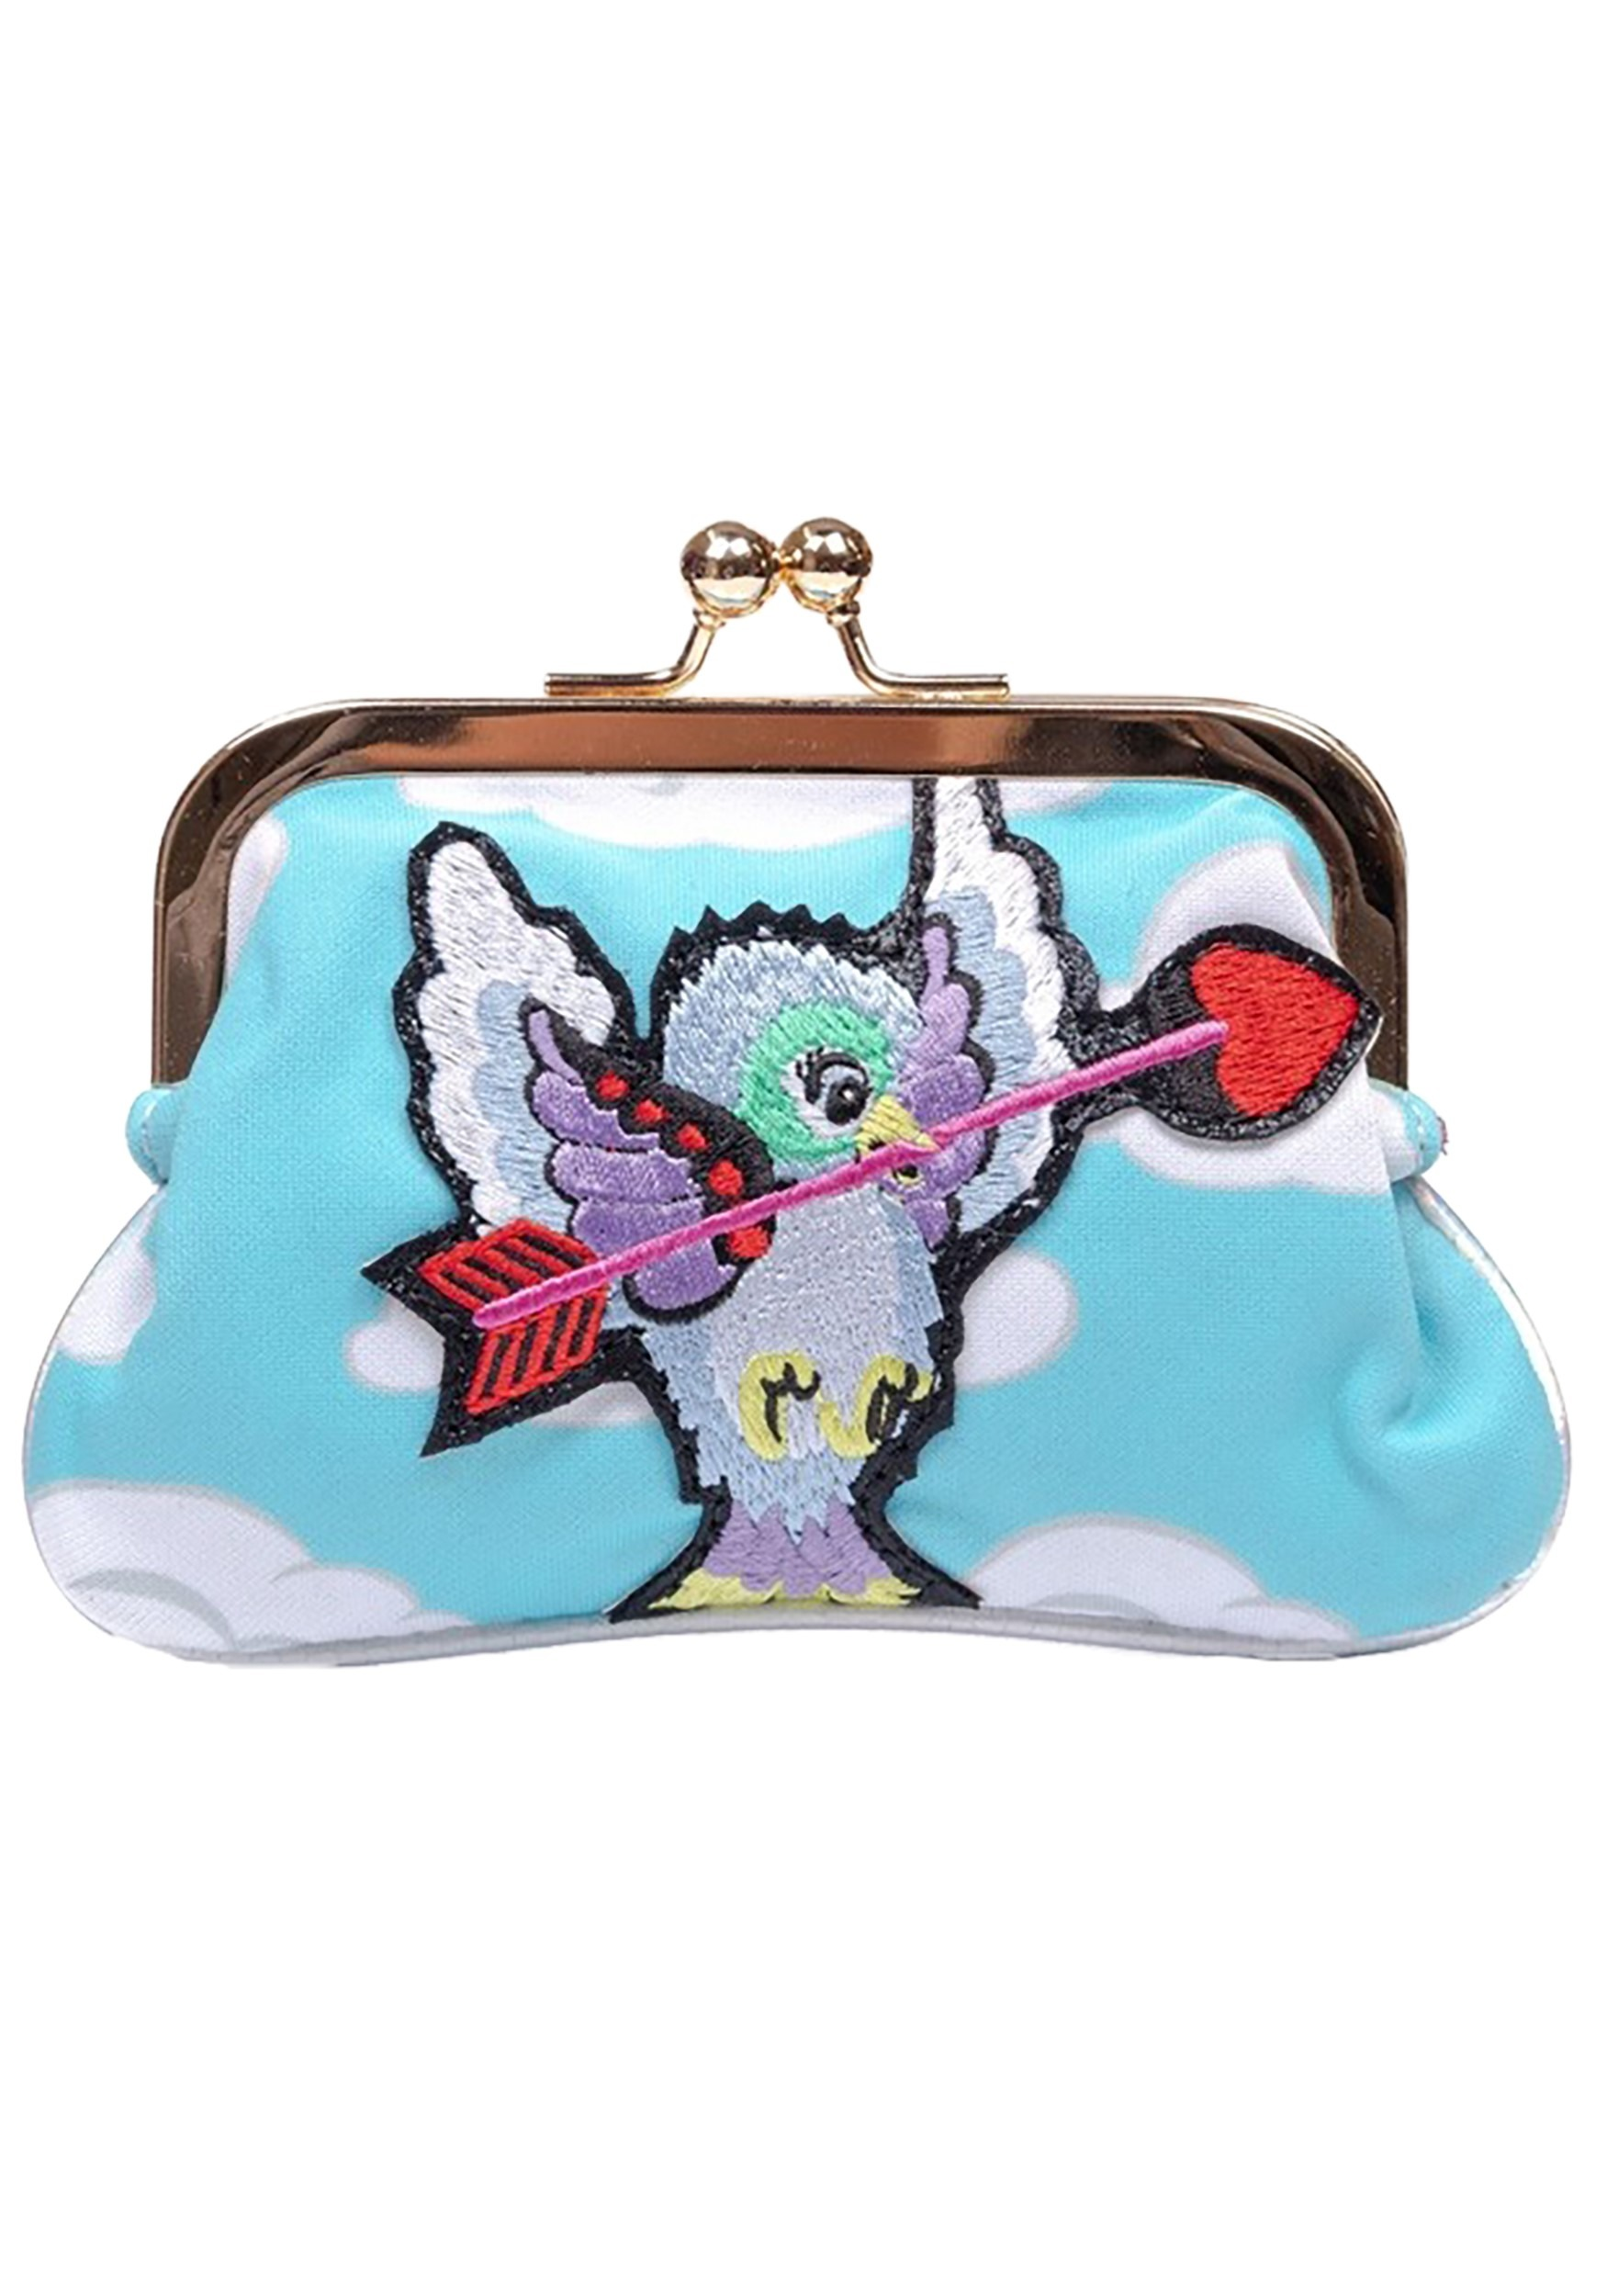 Irregular Choice Cupid Bird Coin Bag Purse